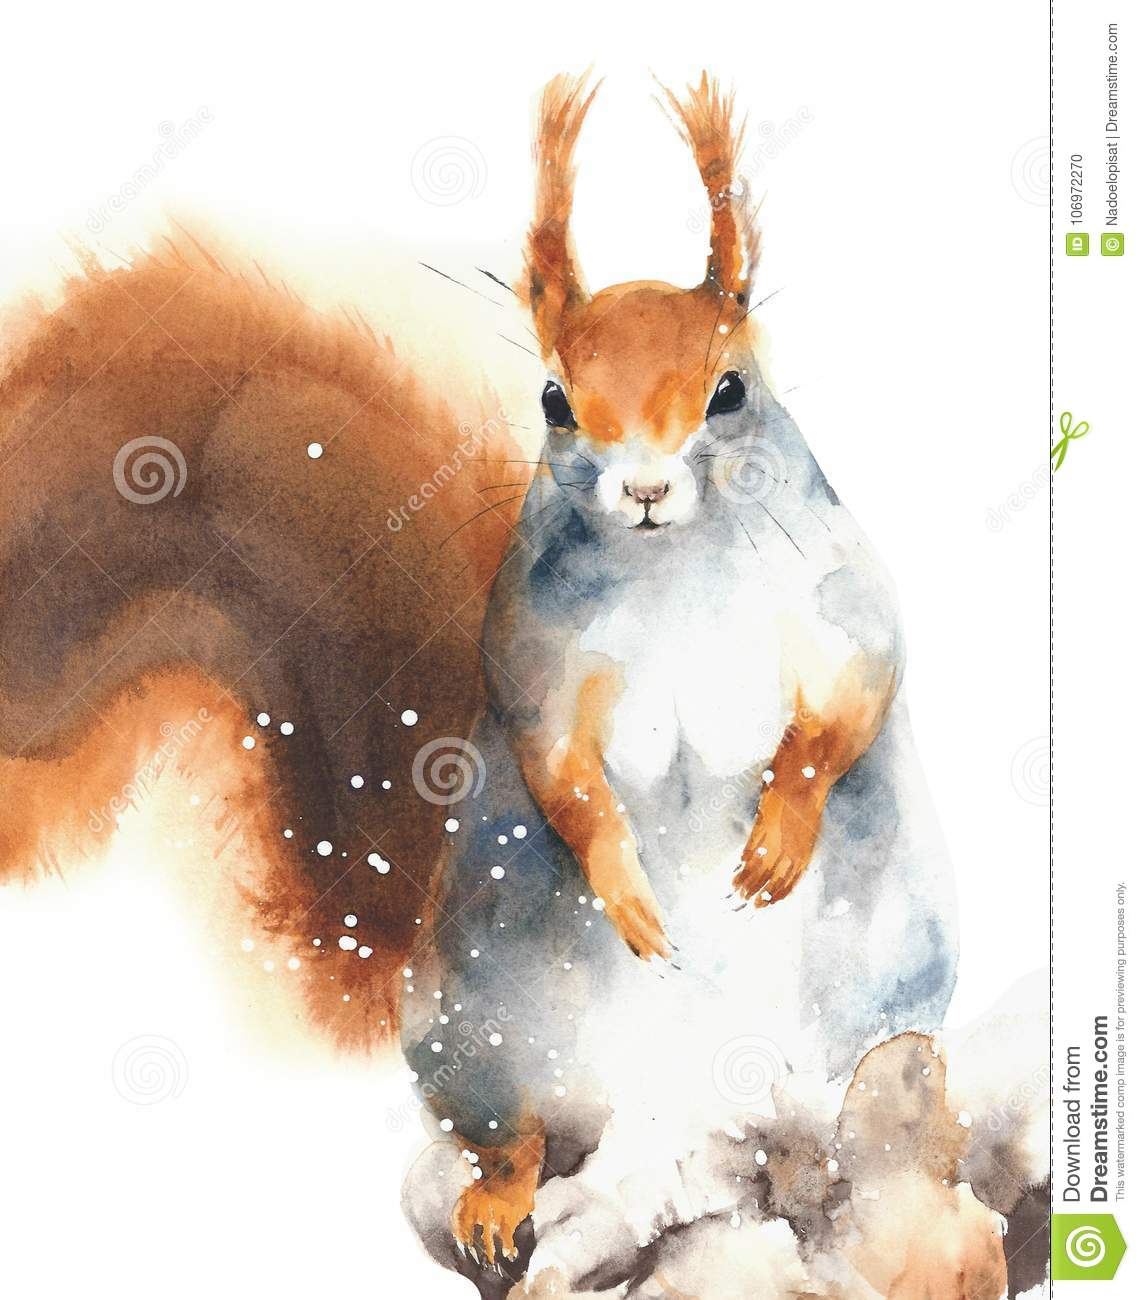 Download Squirrel Red Rodent Cute Animal In Winter Snowing Greeting Card Christmas Watercolor Painting Illustration